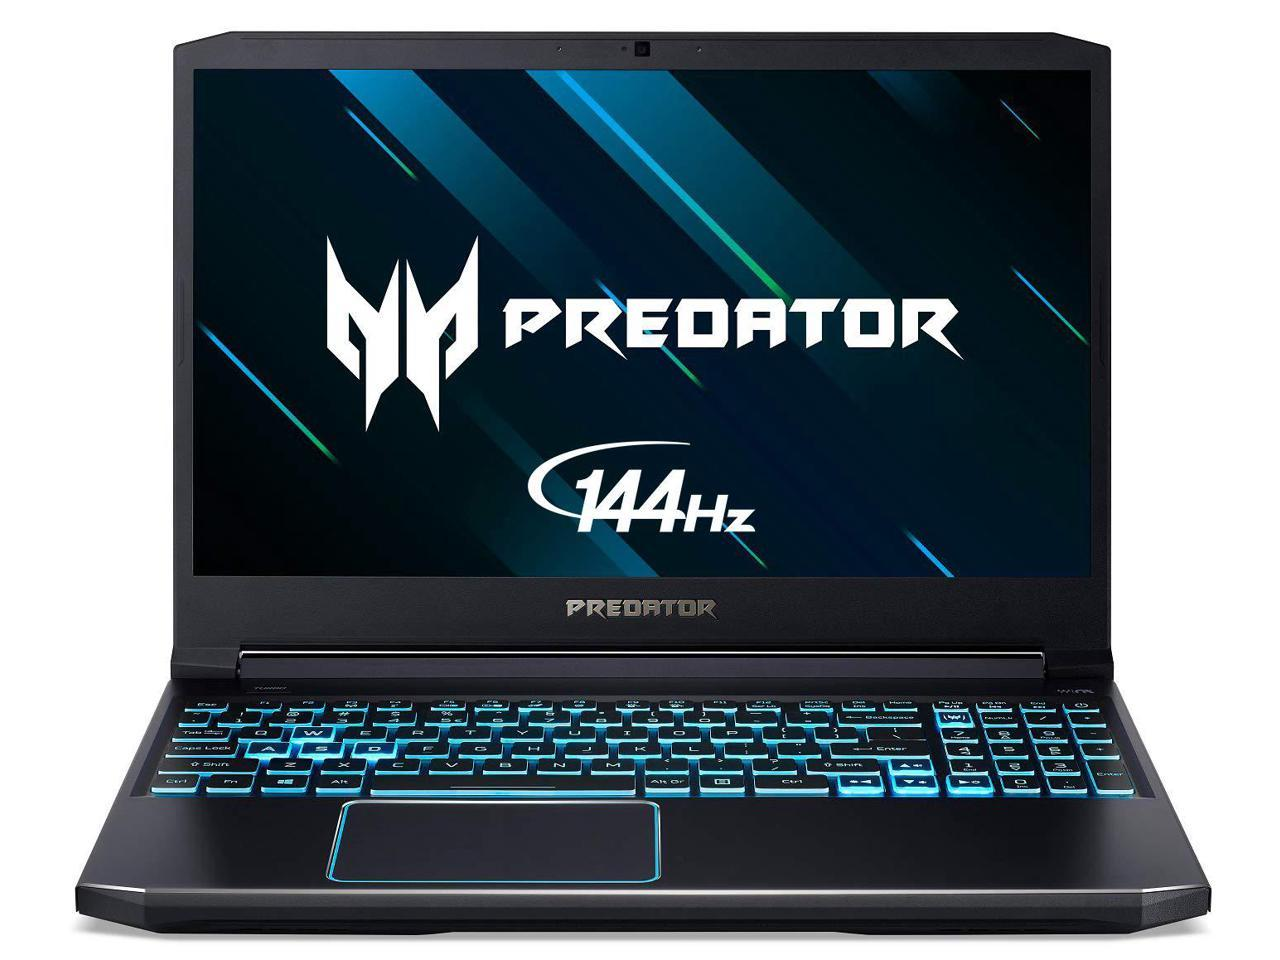 Details About Acer Predator Helios 300 Gaming Laptop I7 9750h 2 60ghz 16gb Ram 256gb Ssd W10h